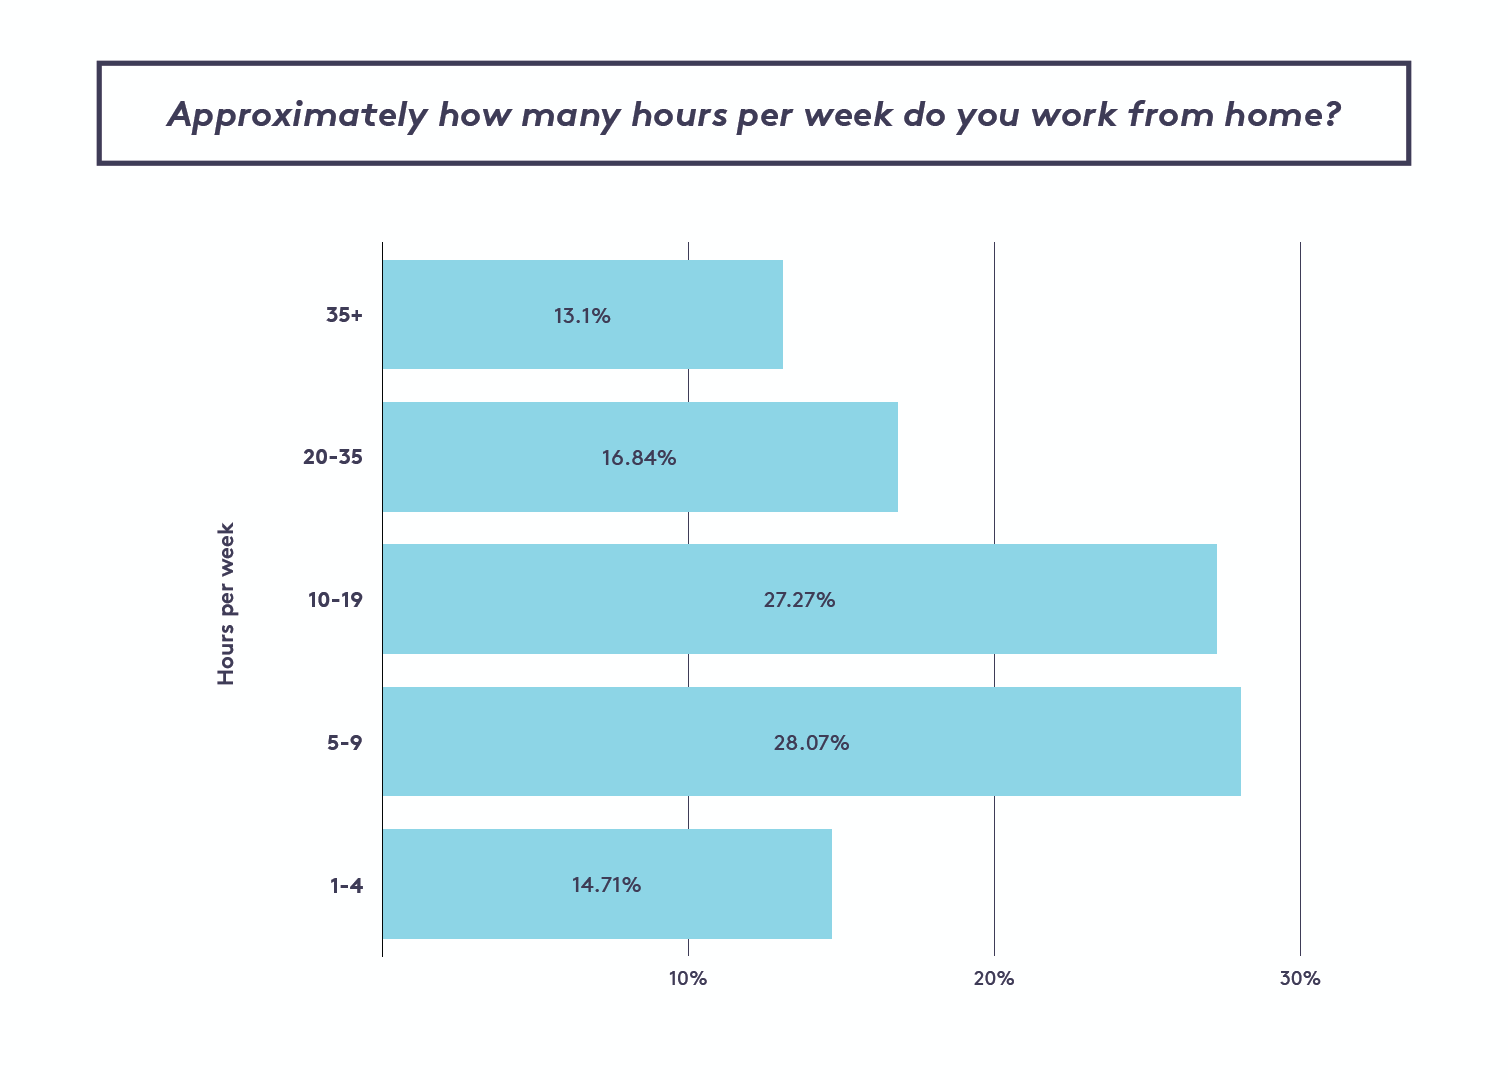 How many hours per week do you work from home?